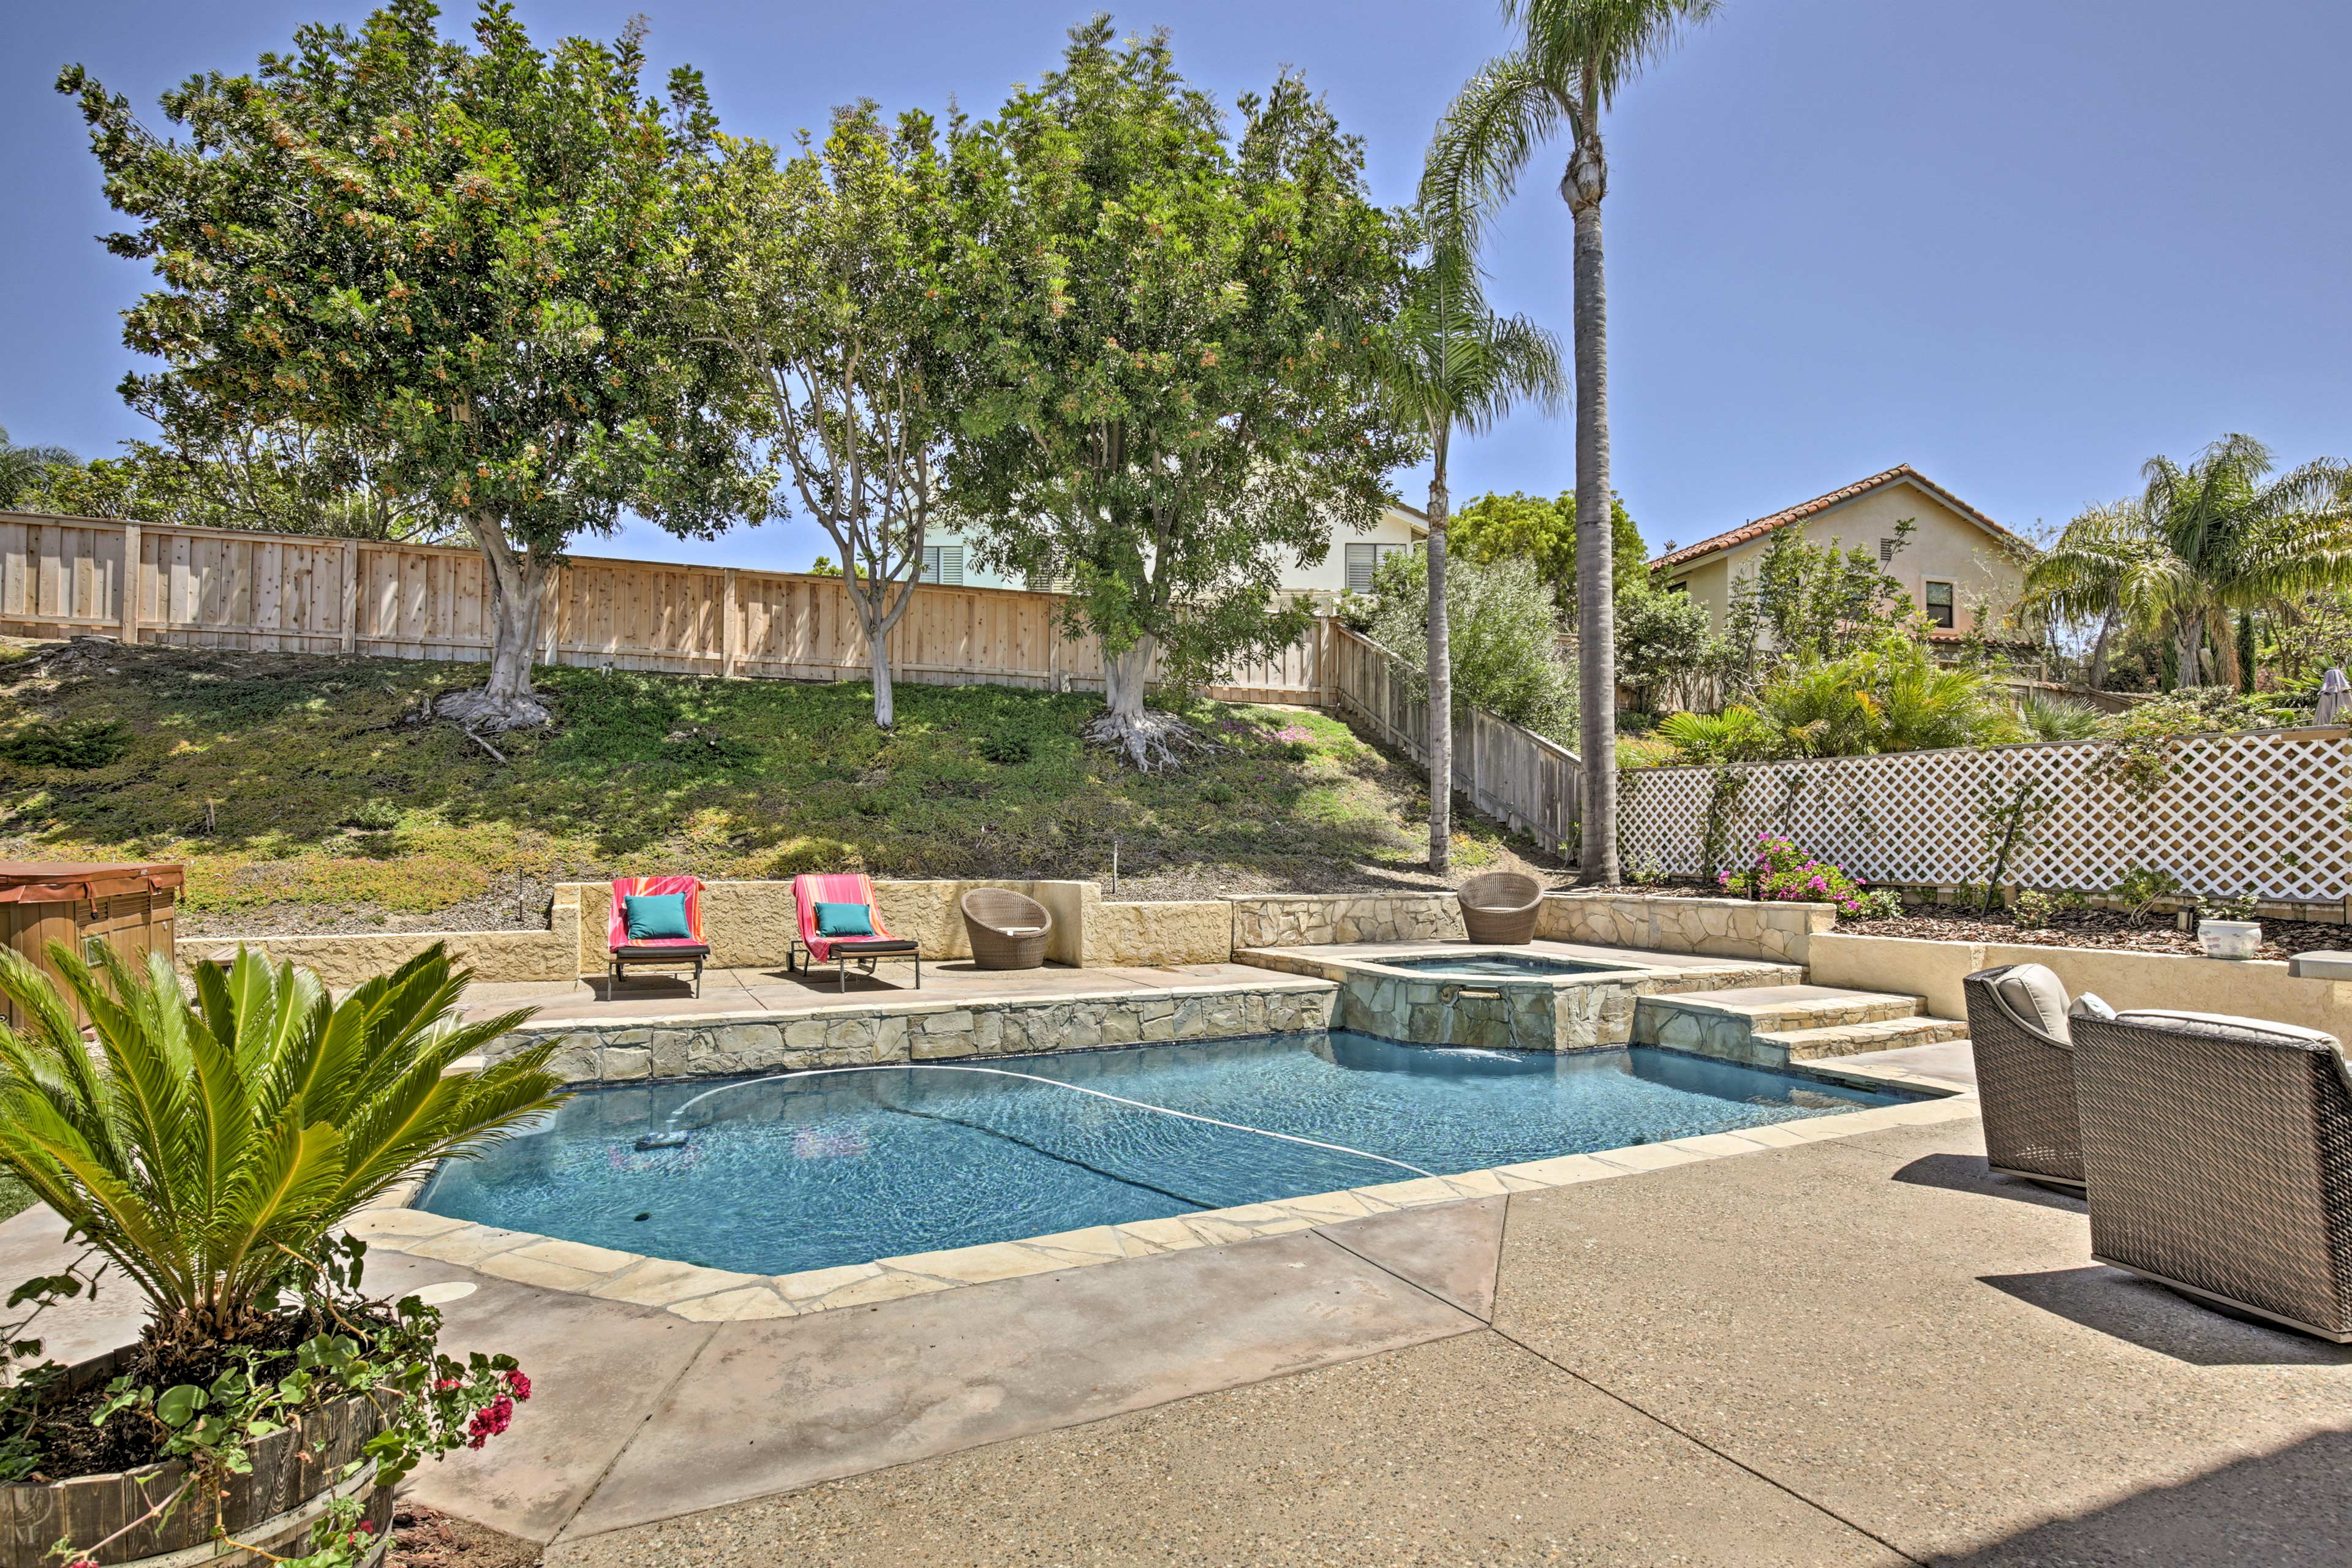 You'll fall in love with this home's backyard oasis and salt water pool!